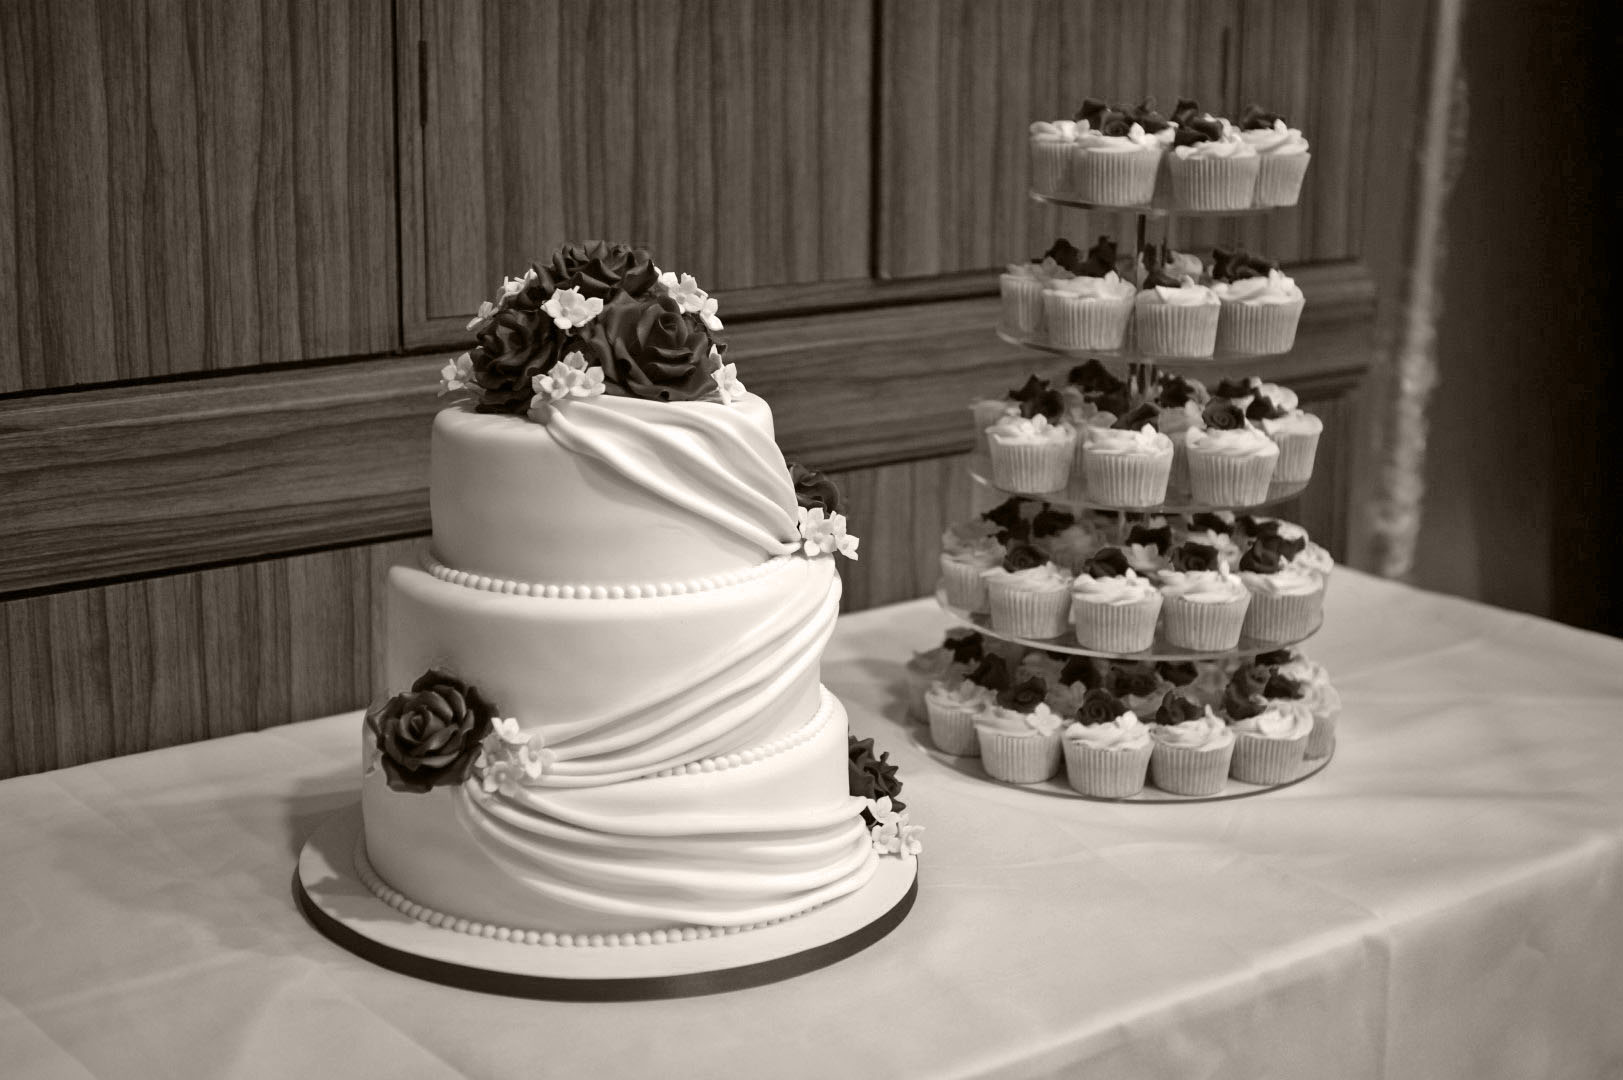 3 Tier Wedding Cake with Cupcake Tower Bakealous